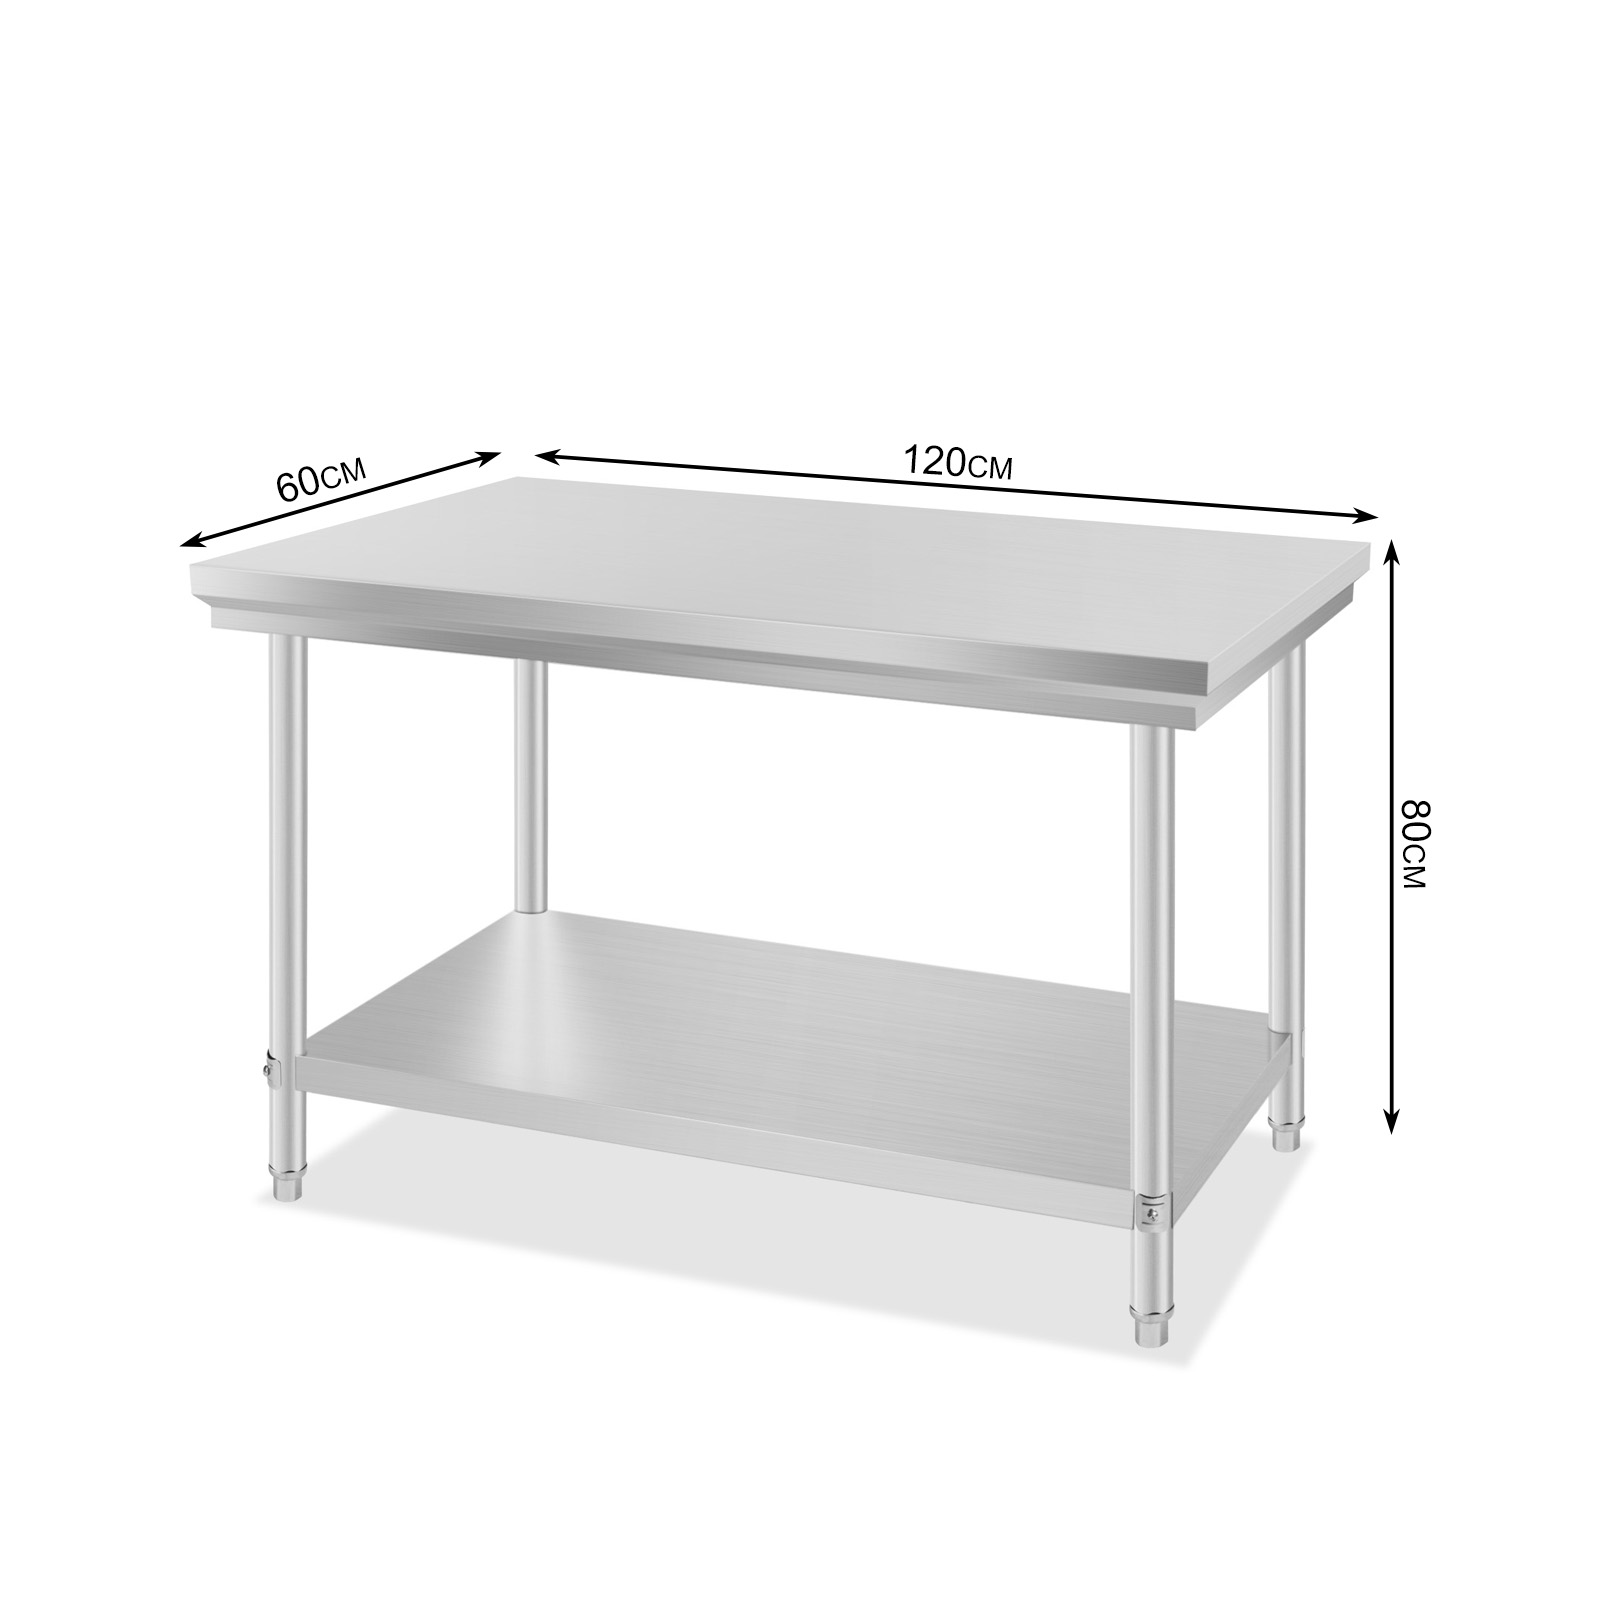 New commercial stainless steel kitchen work prep table nsf approved all sizes ebay - Industrial kitchen table stainless steel ...